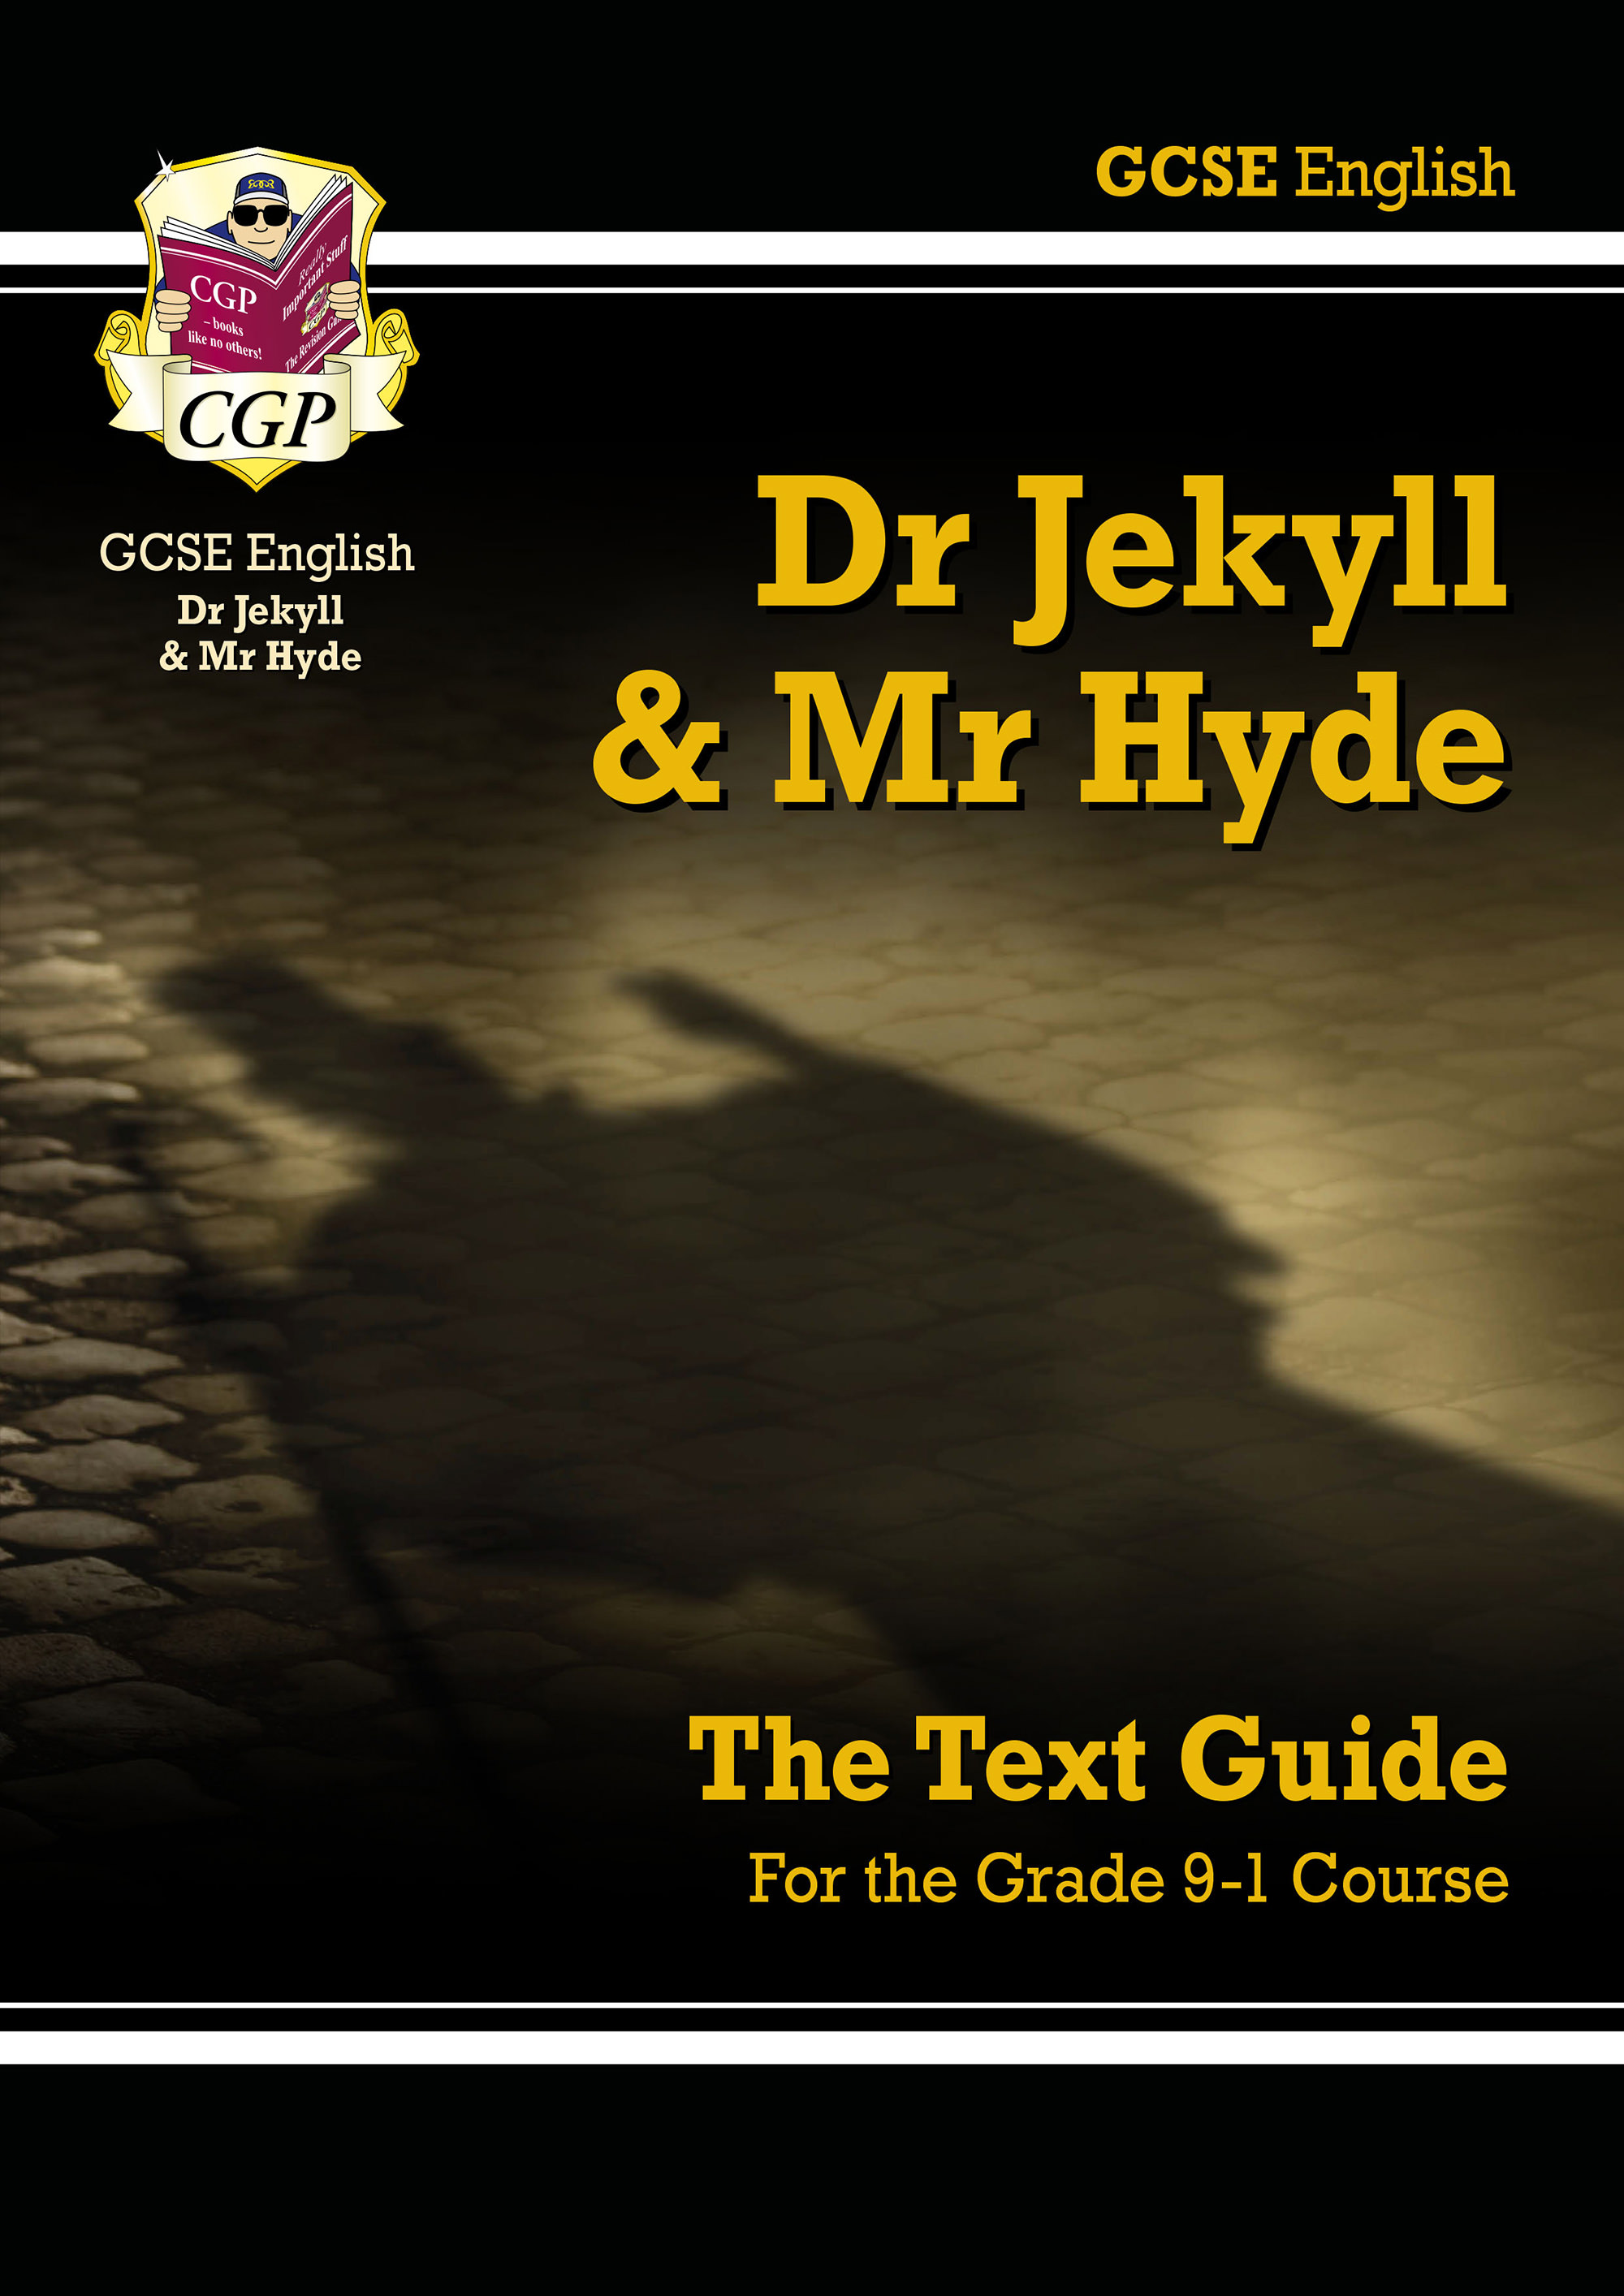 ETJH41DK - Grade 9-1 GCSE English Text Guide - Dr Jekyll and Mr Hyde